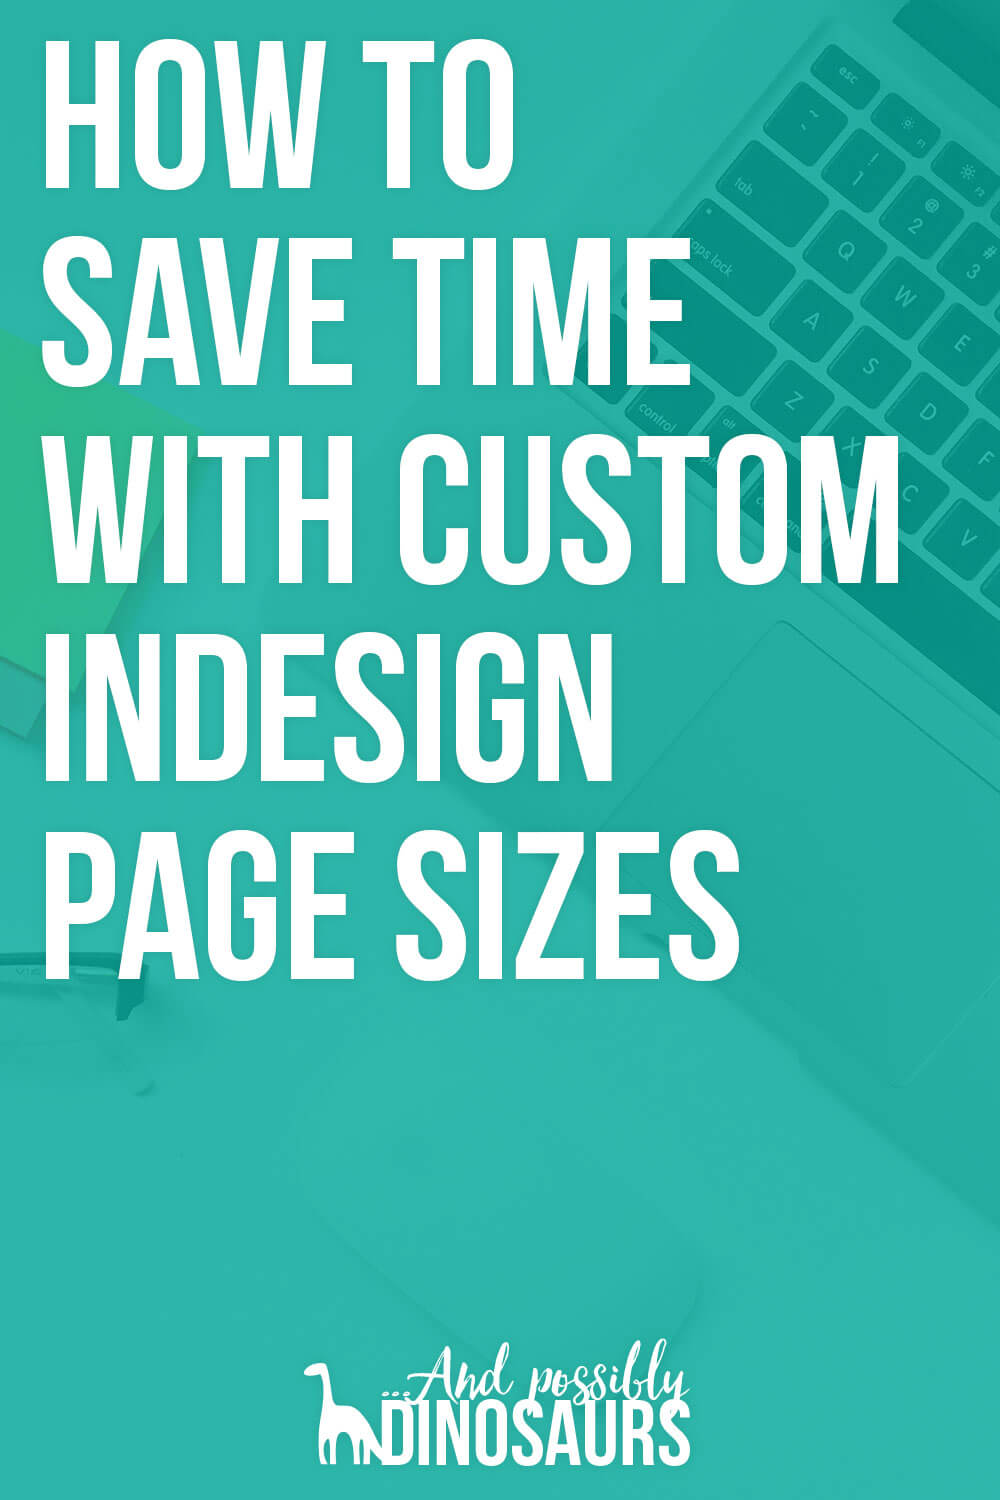 InDesign is an amazing tool for so many things--ebooks, worksheets, even buttons for your website! But how can we save time with InDesign? By creating custom InDesign page sizes! Click through for the tutorial!